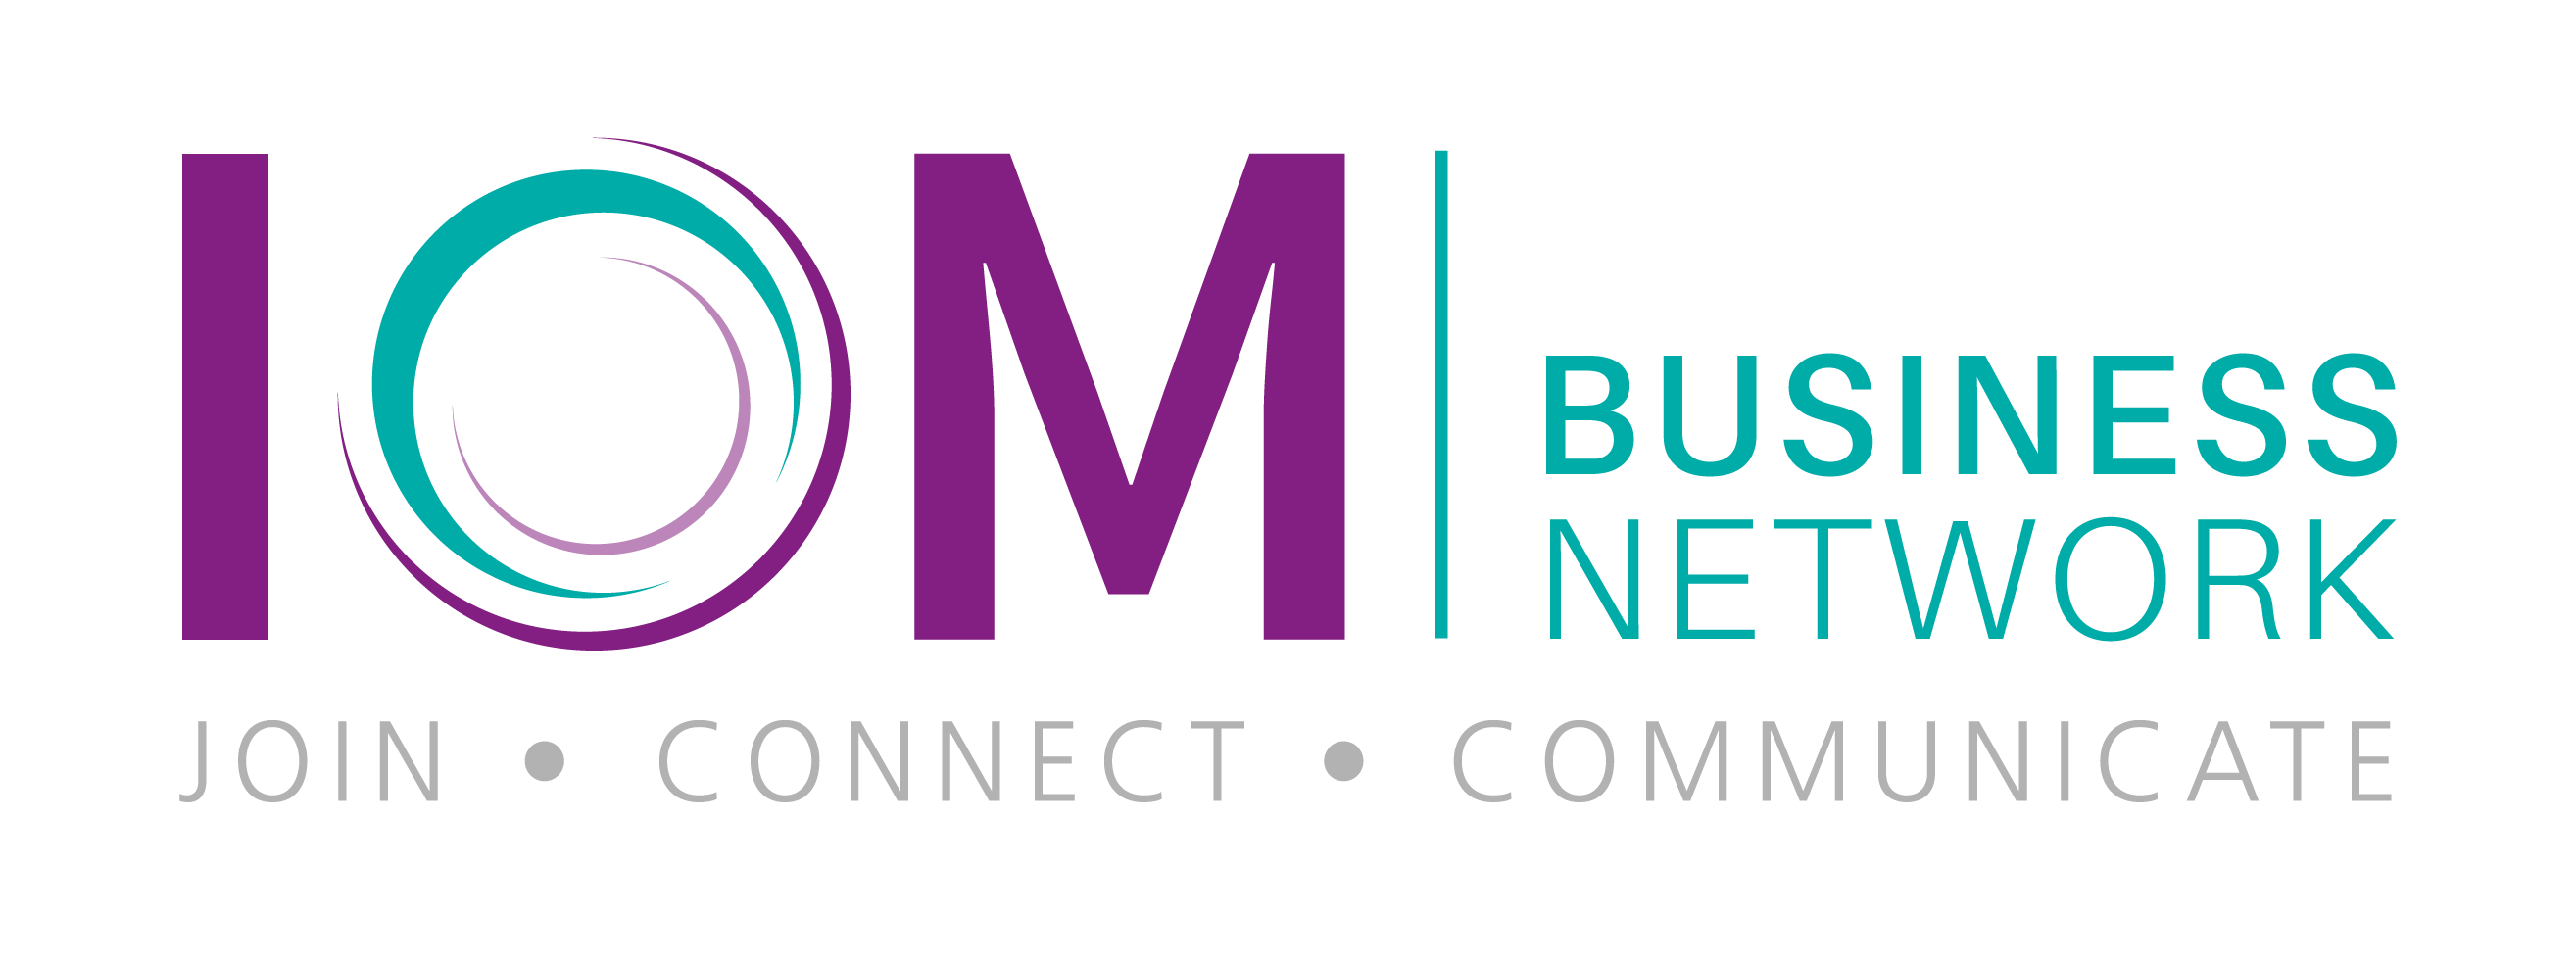 Client logo: IOM Business Network